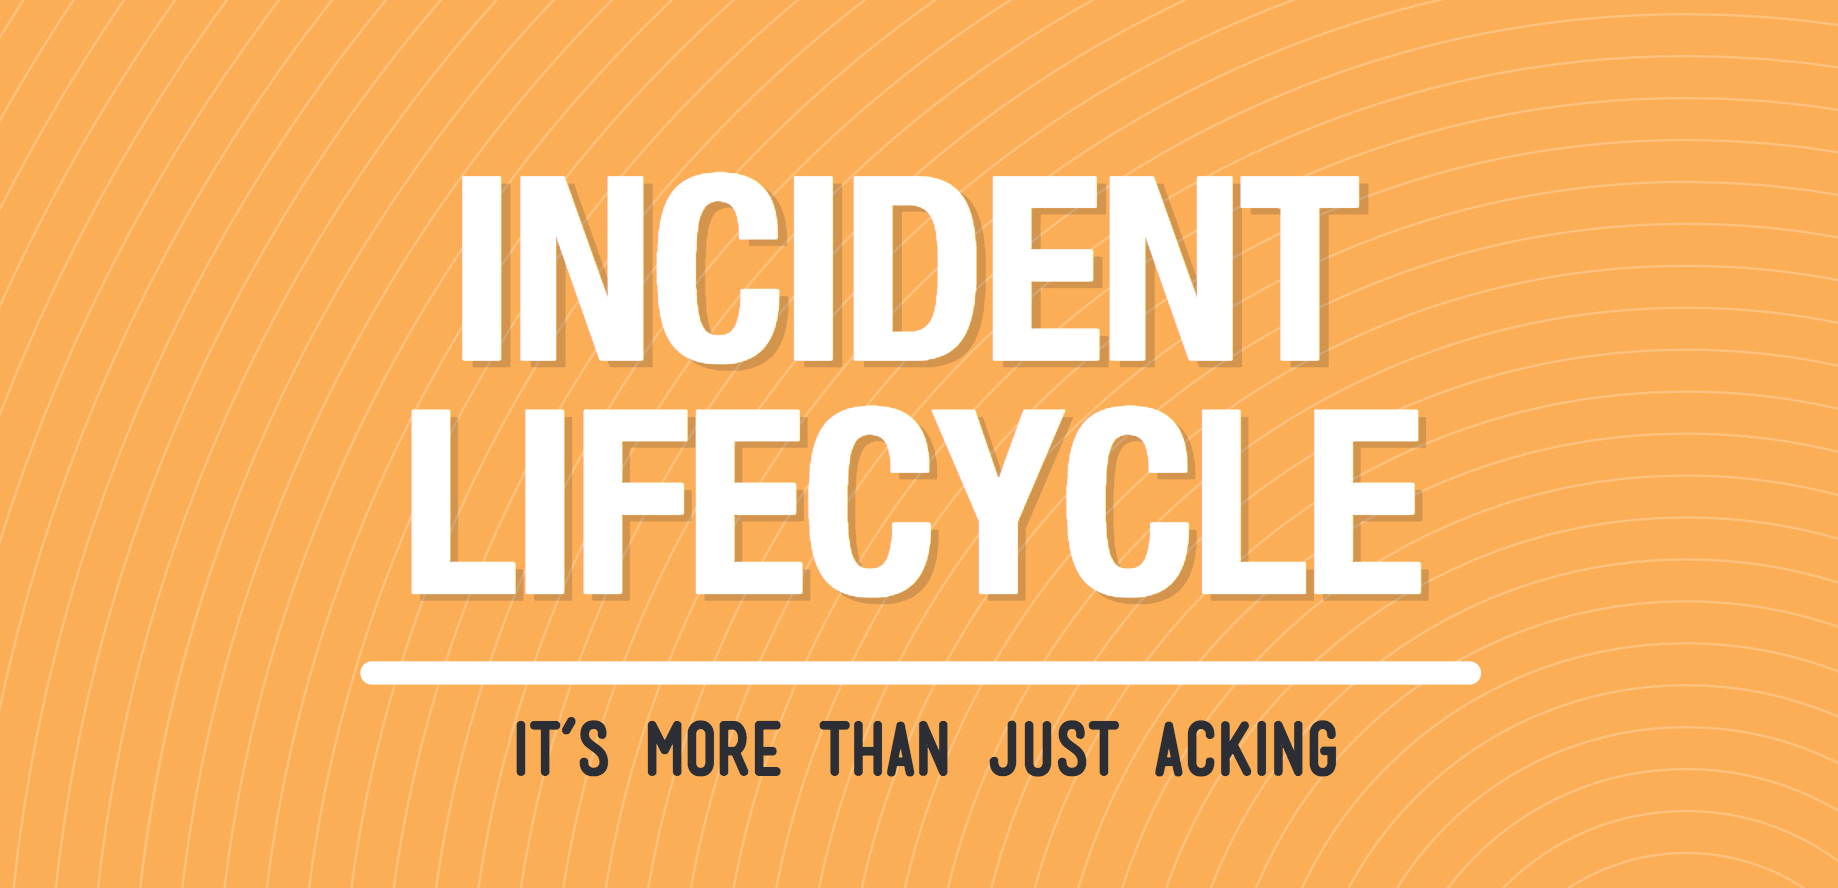 The Incident Lifecycle Guide Header Image